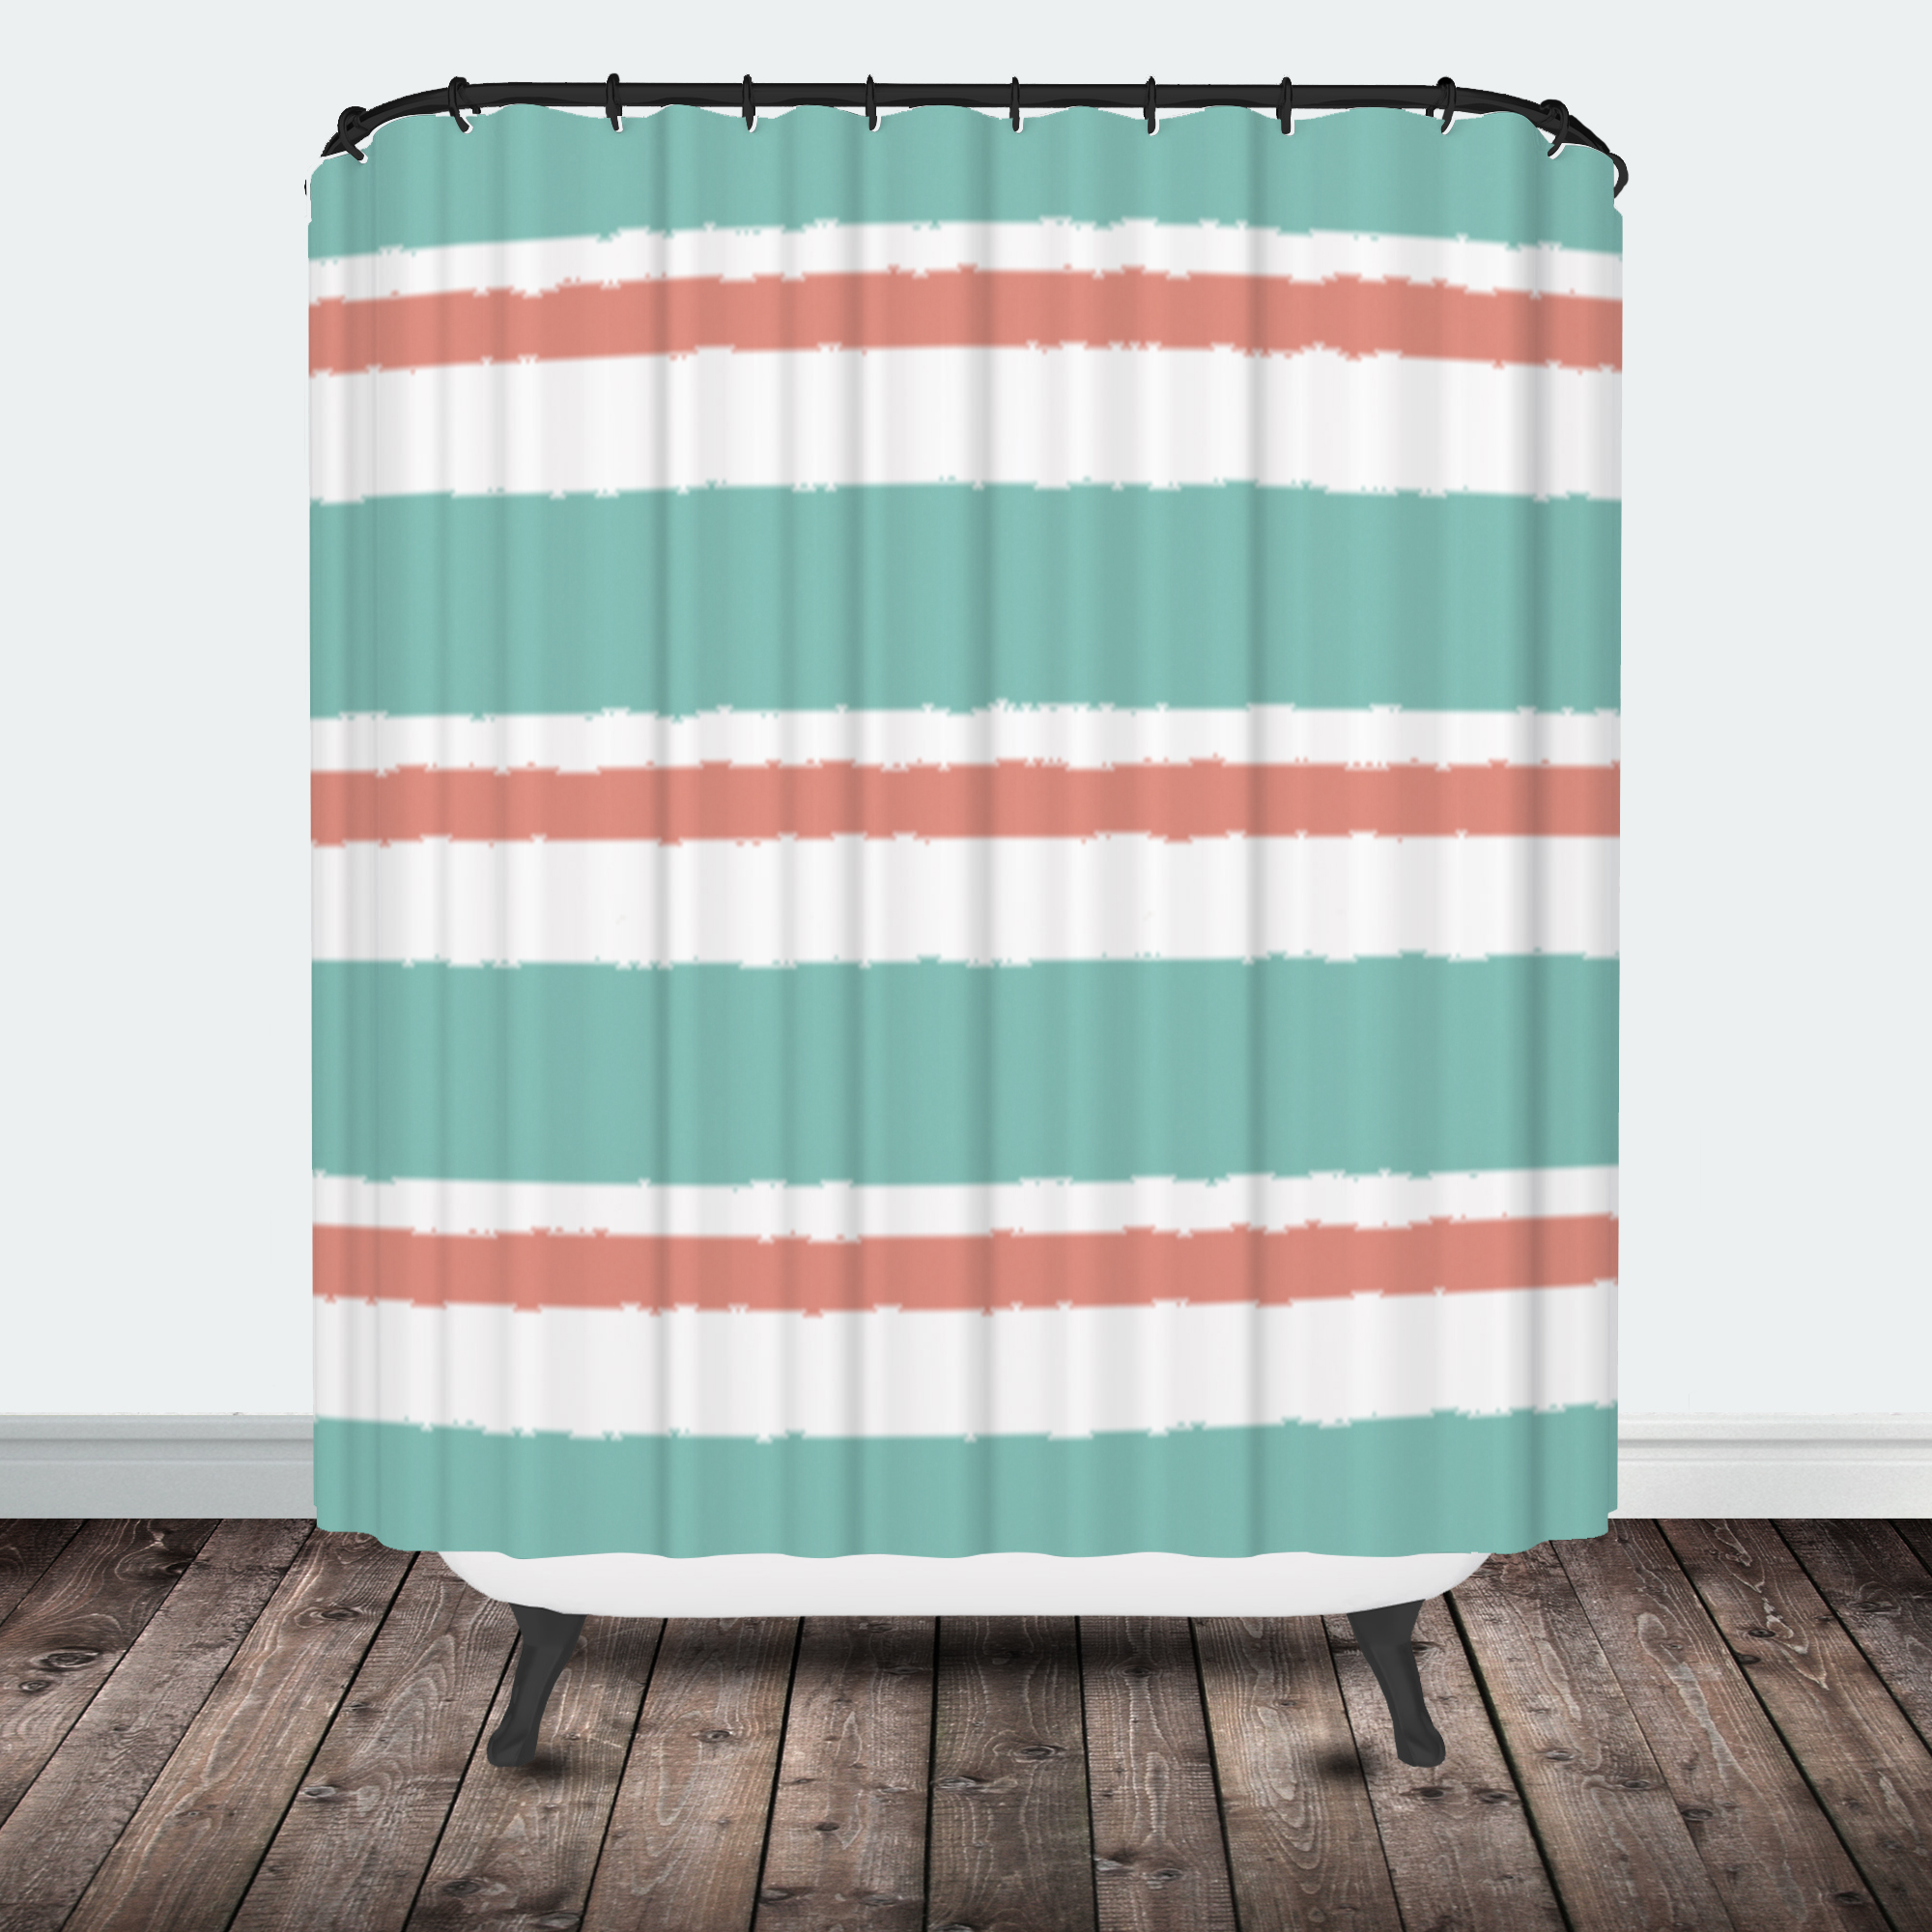 Turquoise And Coral Shower Curtain. Star Burst Tribal Shower Curtain Coral Mint Stripe  Moroccan